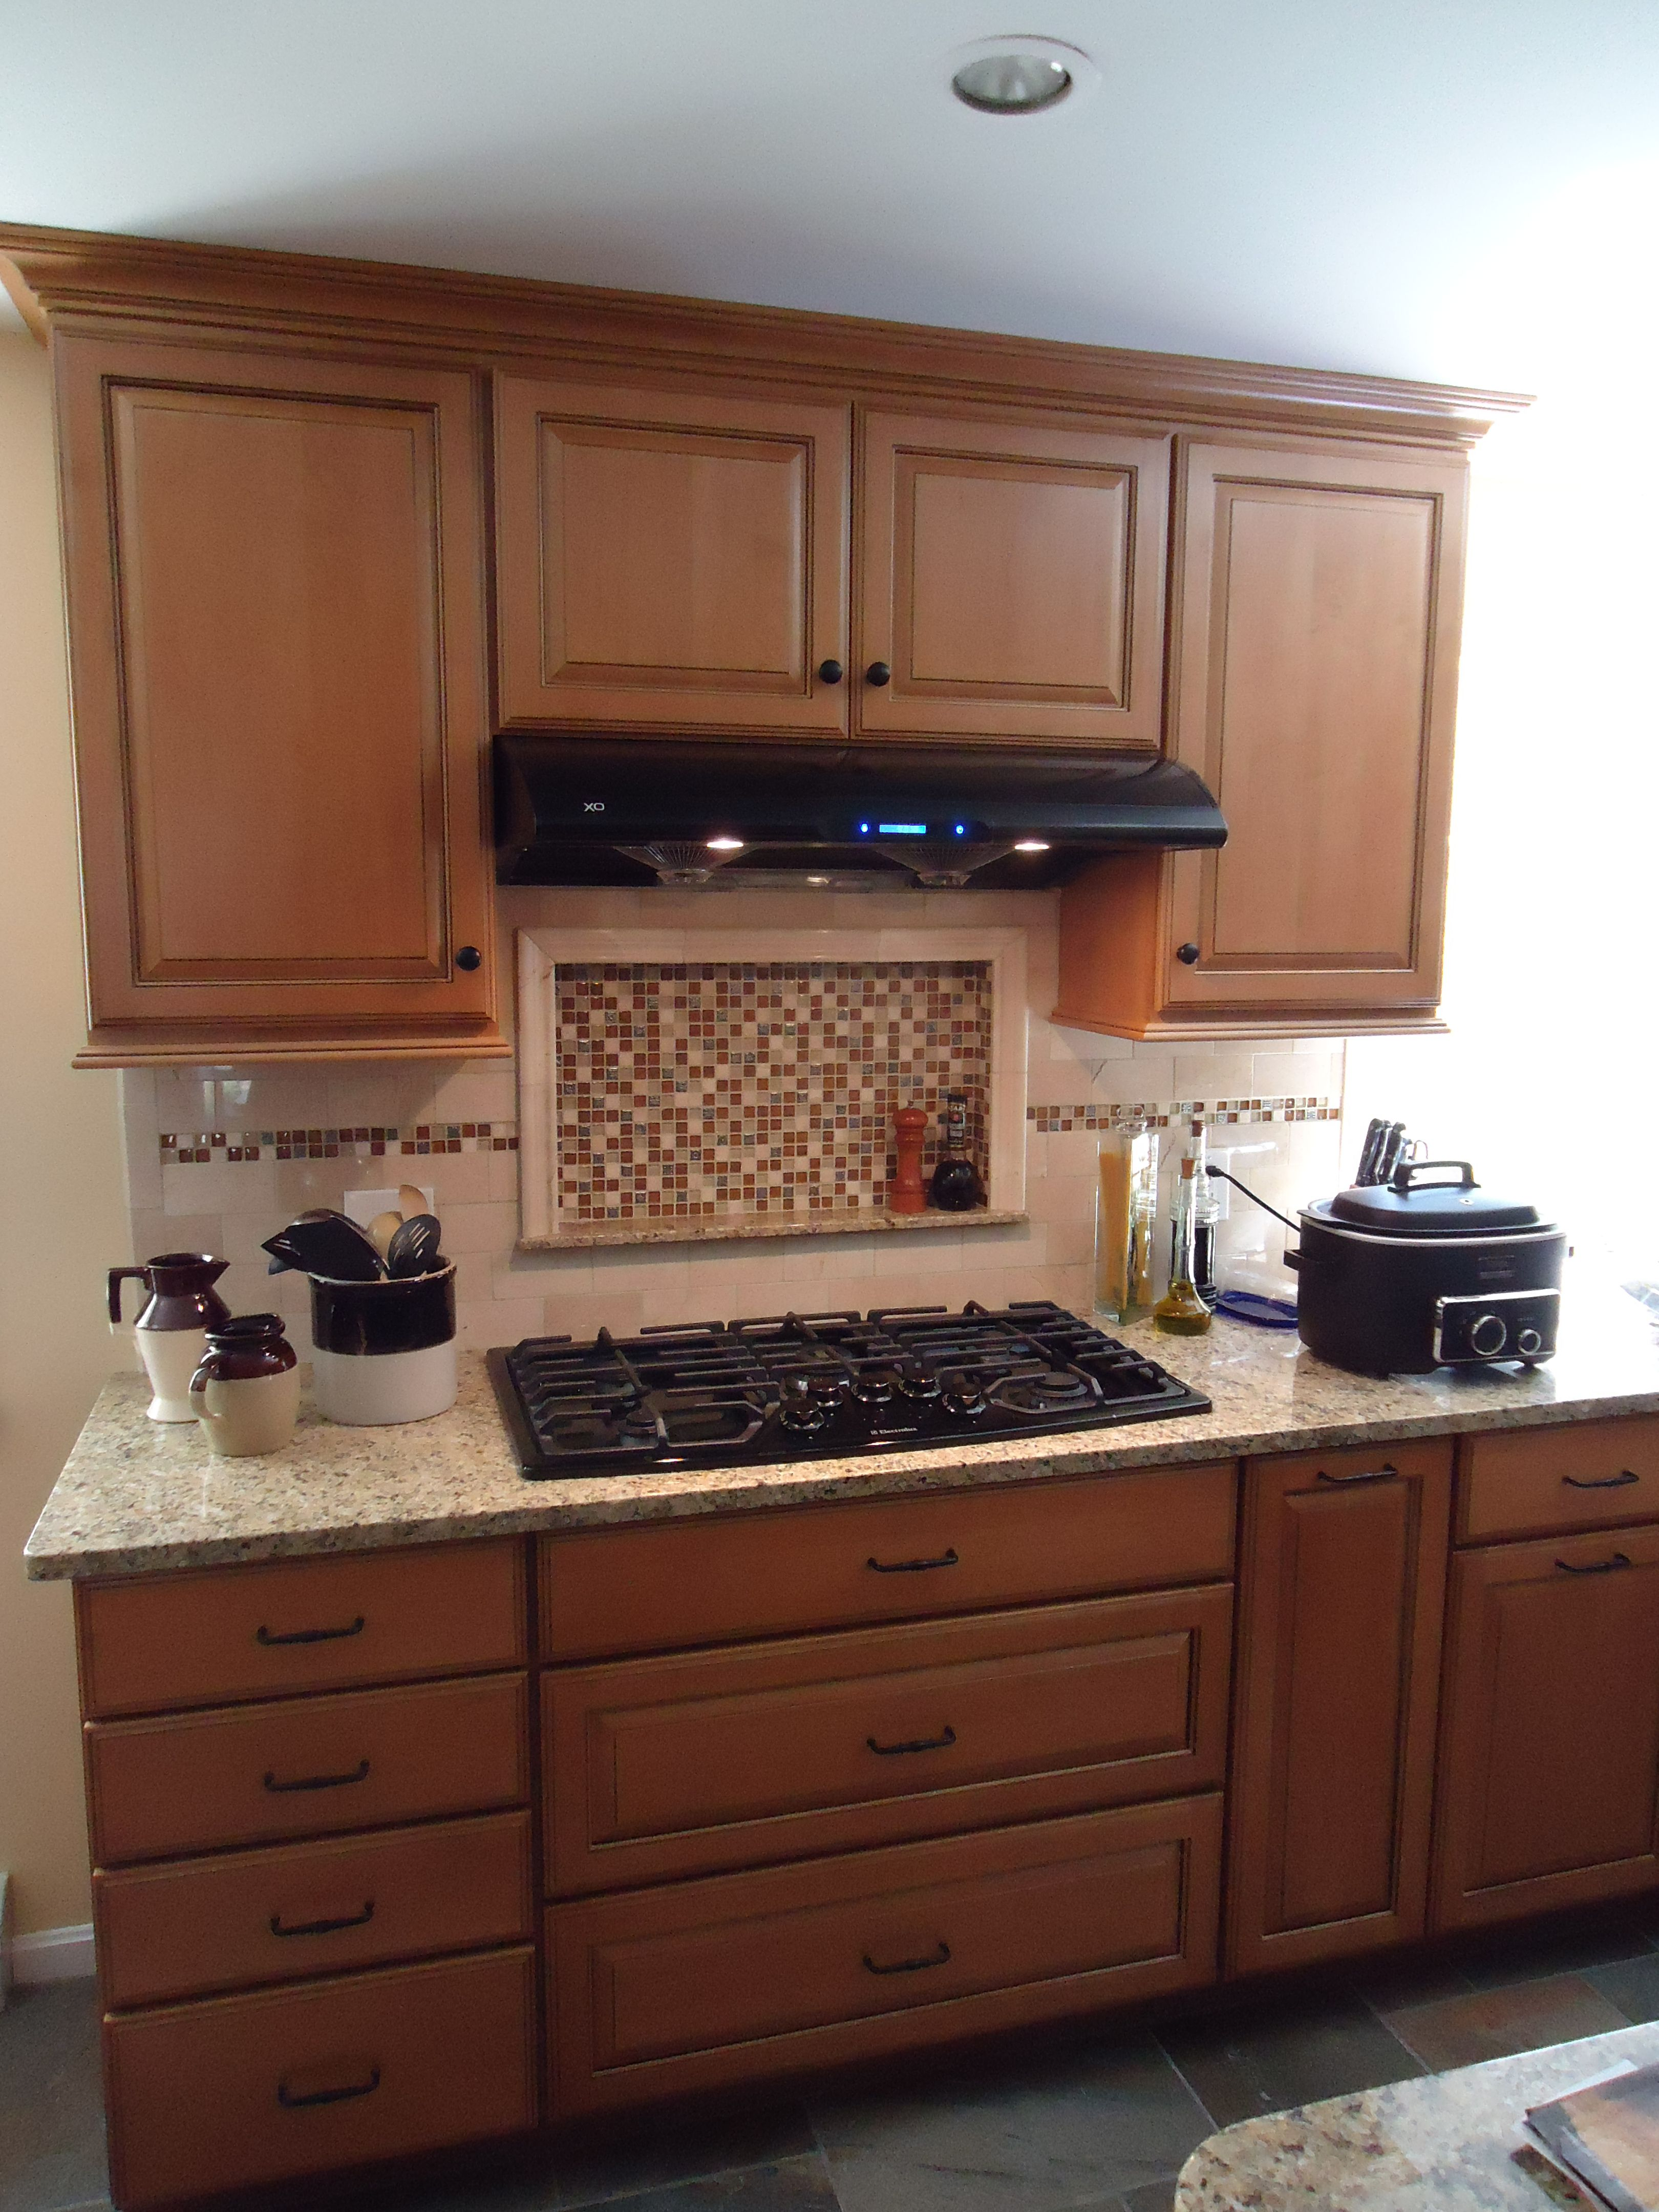 Raised Panel Maple Cabinets with medium stain and New Venetian Gold Granite Counters.  Nester's Kitchen & Bath, Conway, NH